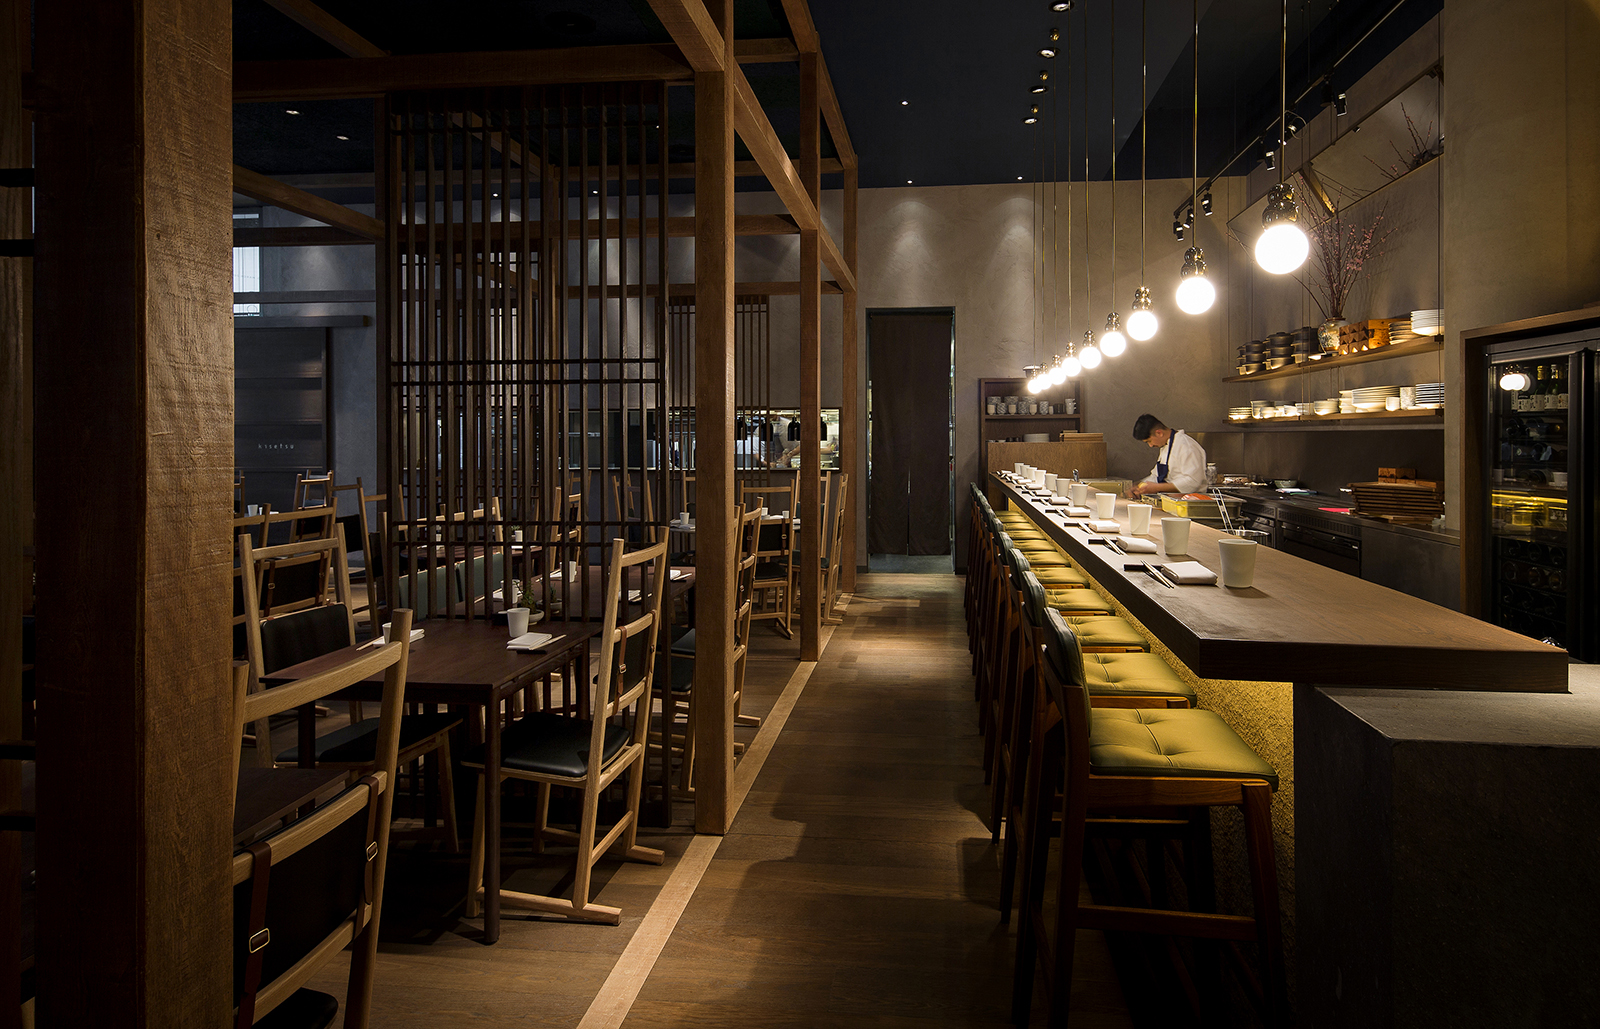 Neri hu design a japanese izakaya for jason atherton 39 s for Restaurant design london